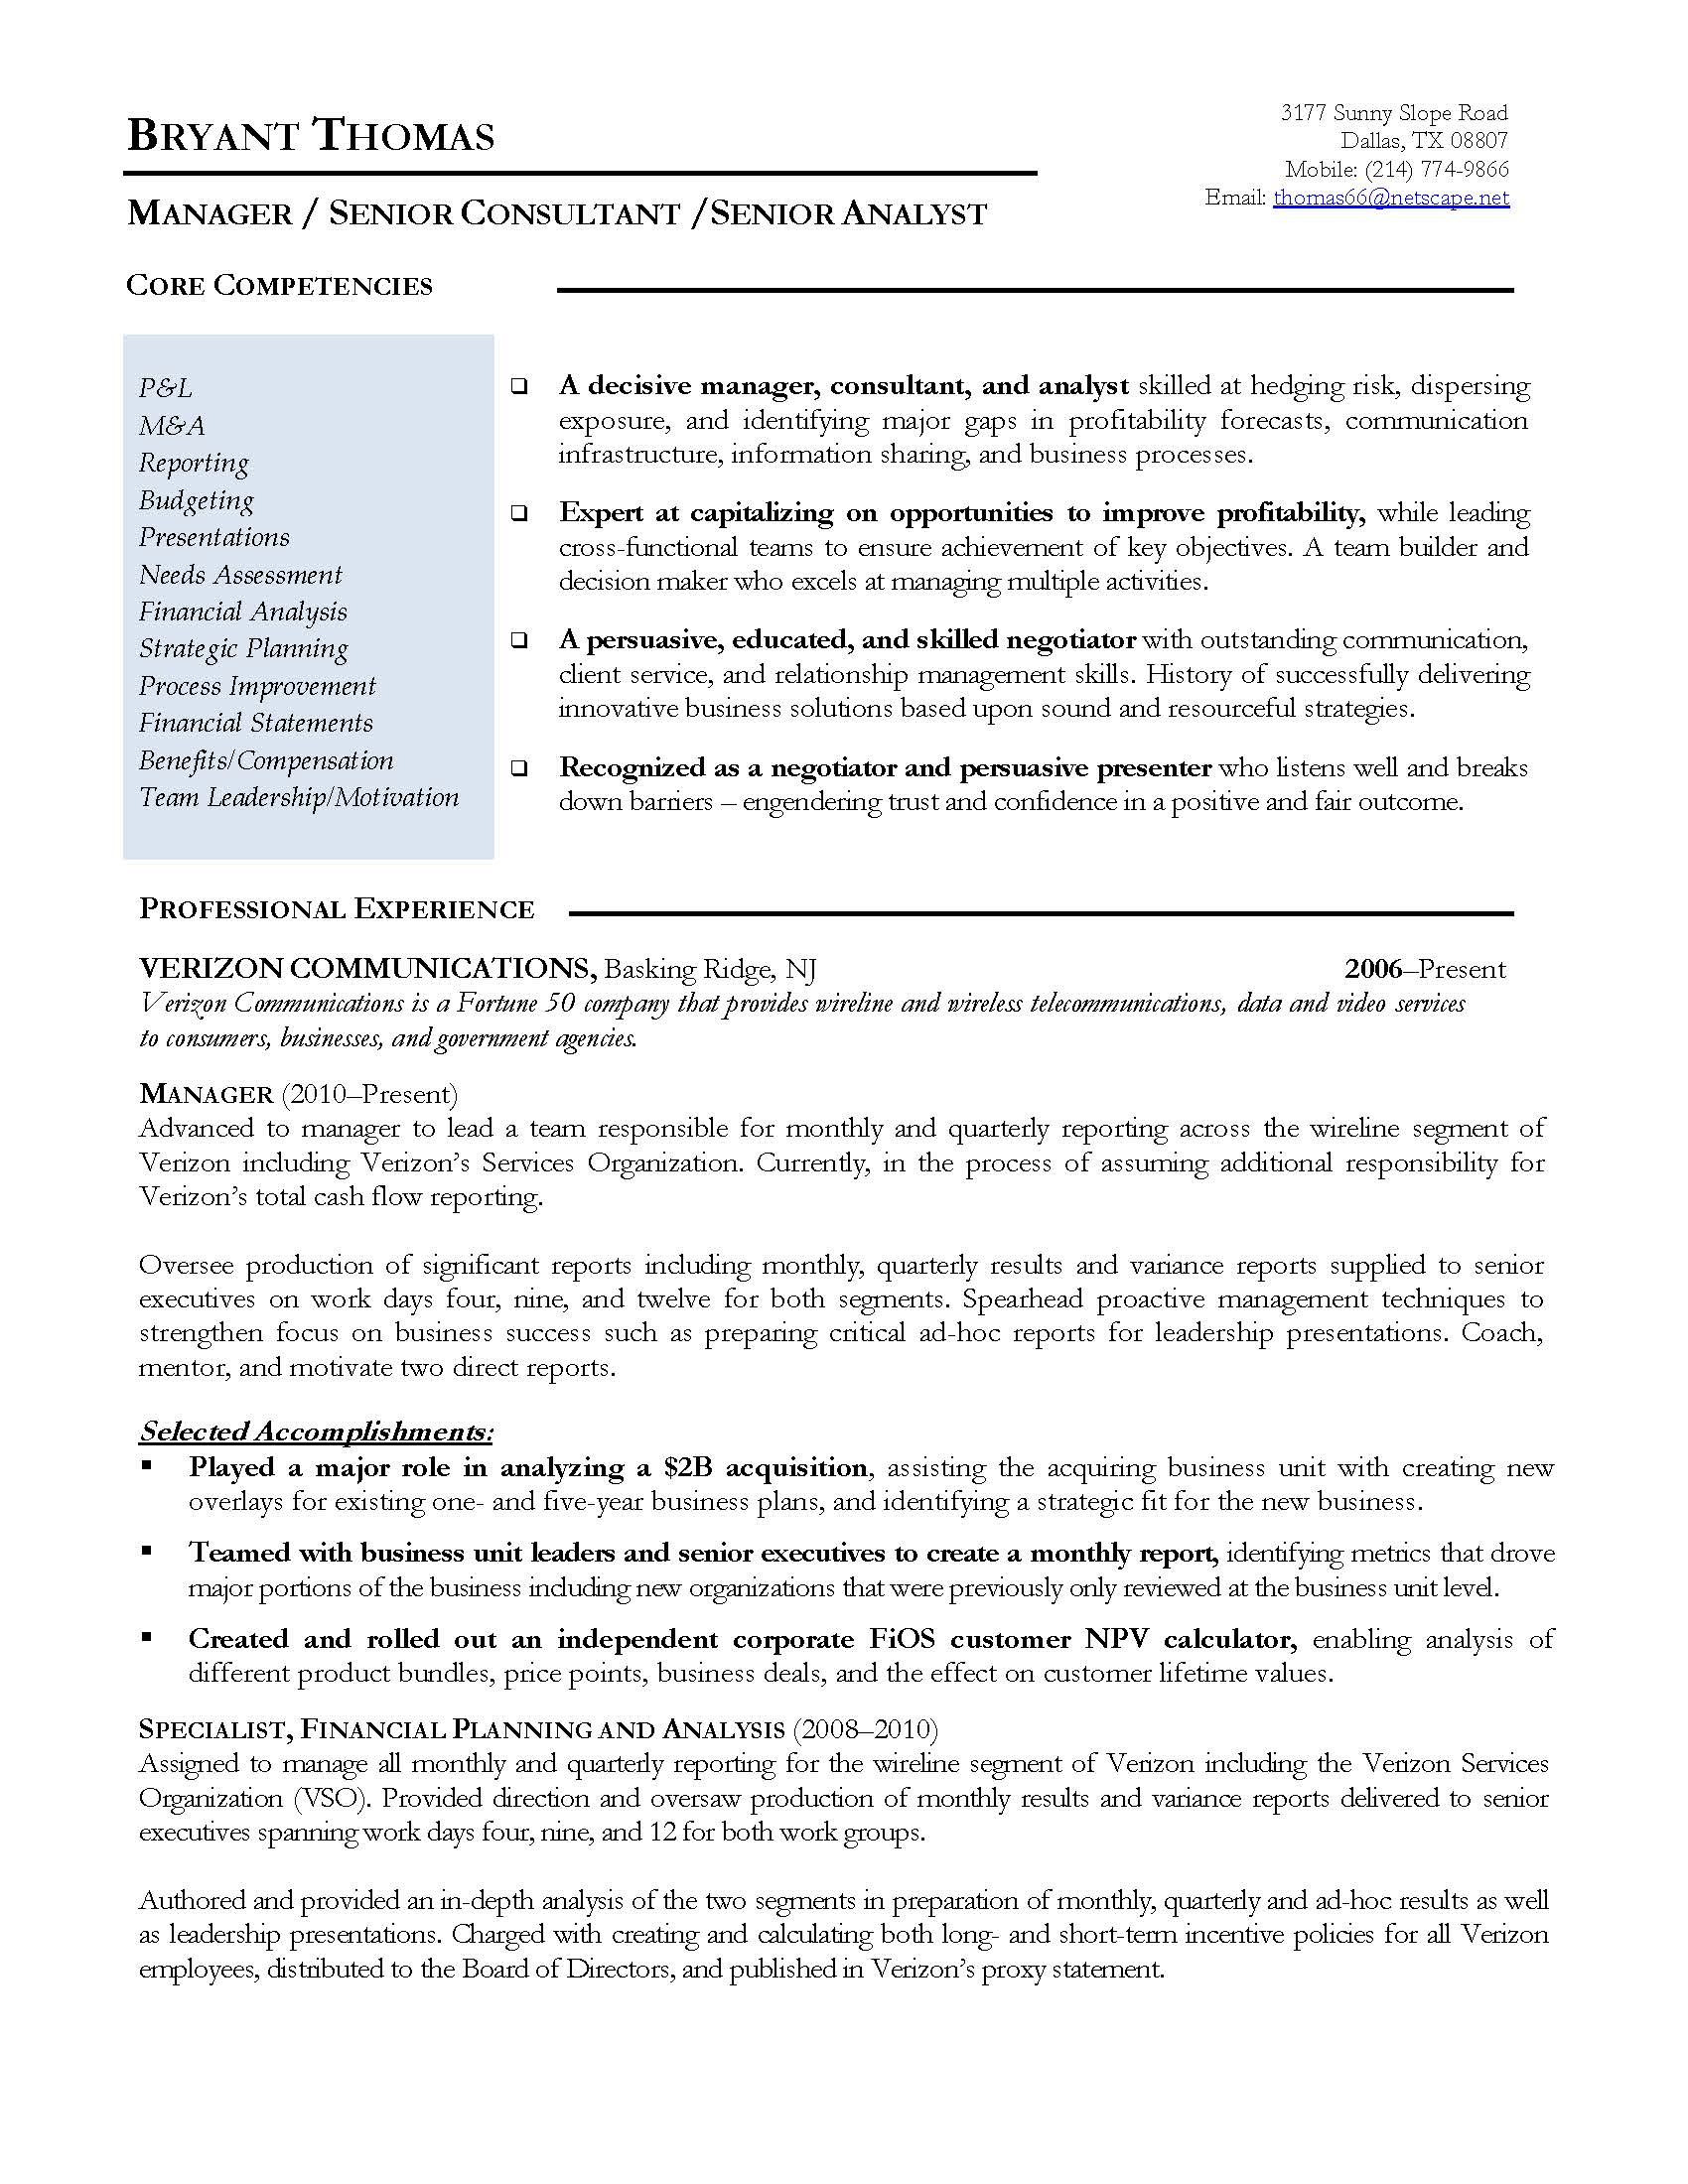 conference service manager resume professional summary for cv of professional resumes